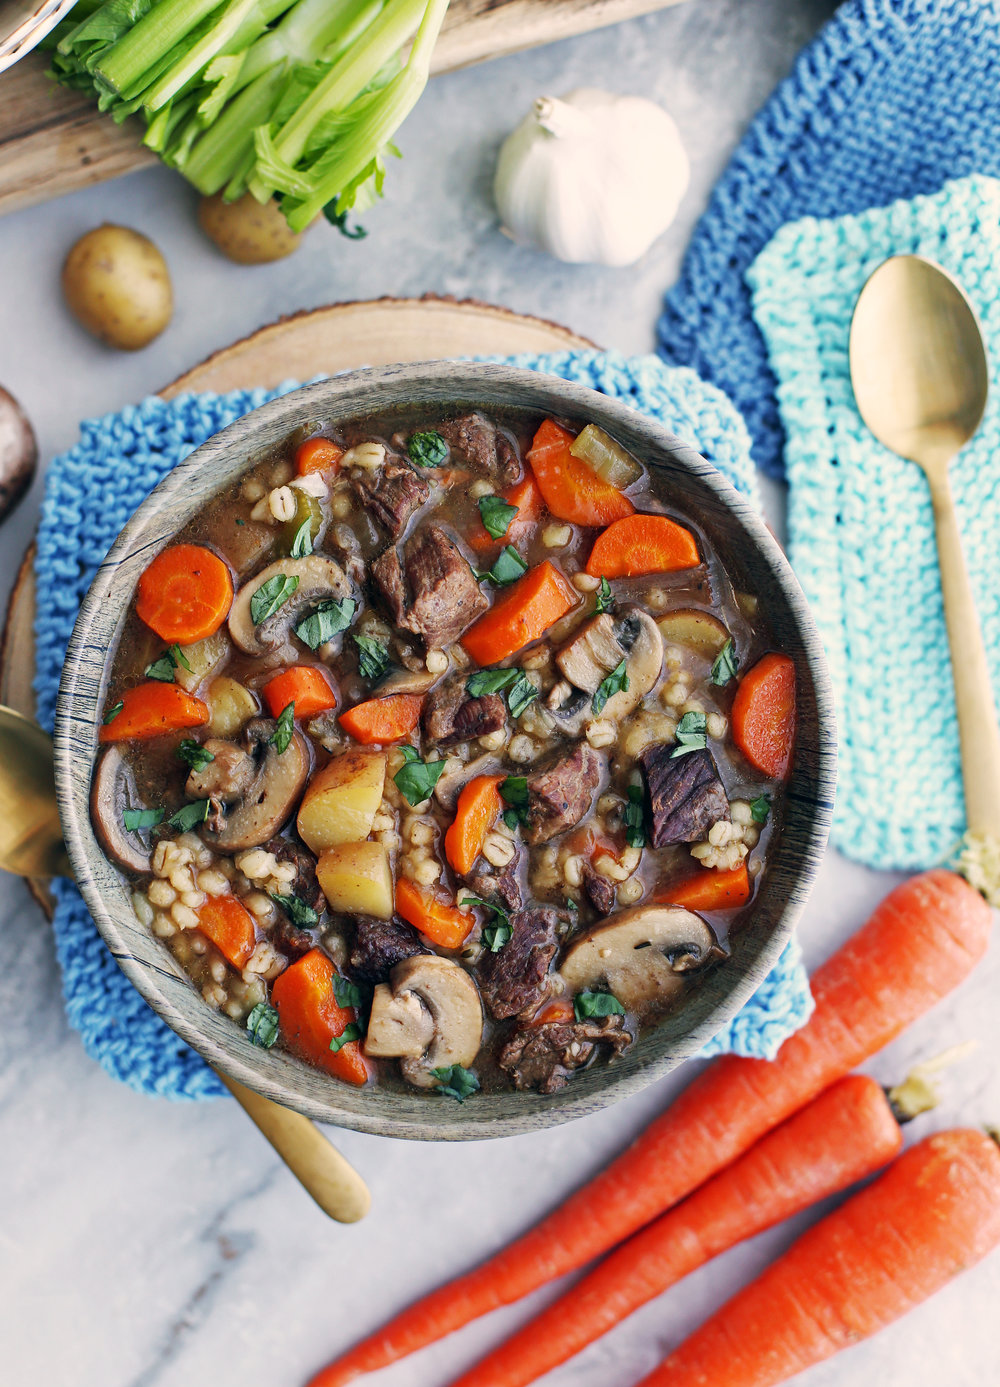 Beef barley mushroom soup with fresh vegetables (e.g. carrots, celery, potatoes, onion) in a bowl.